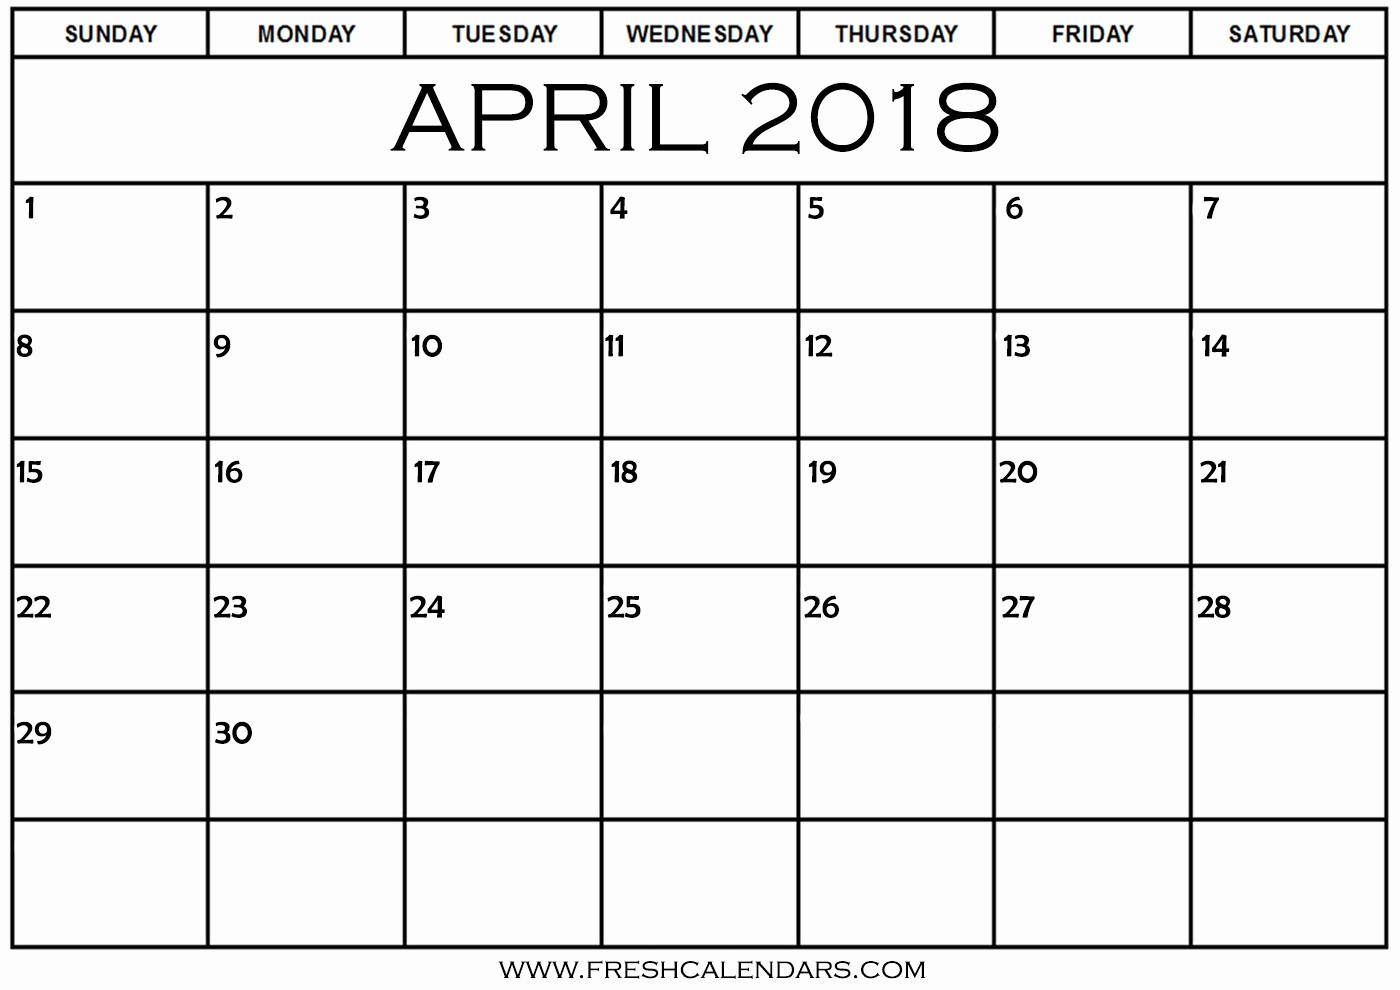 Blank April 2018 Calendar Template Luxury Blank April 2018 Calendar Printable Templates